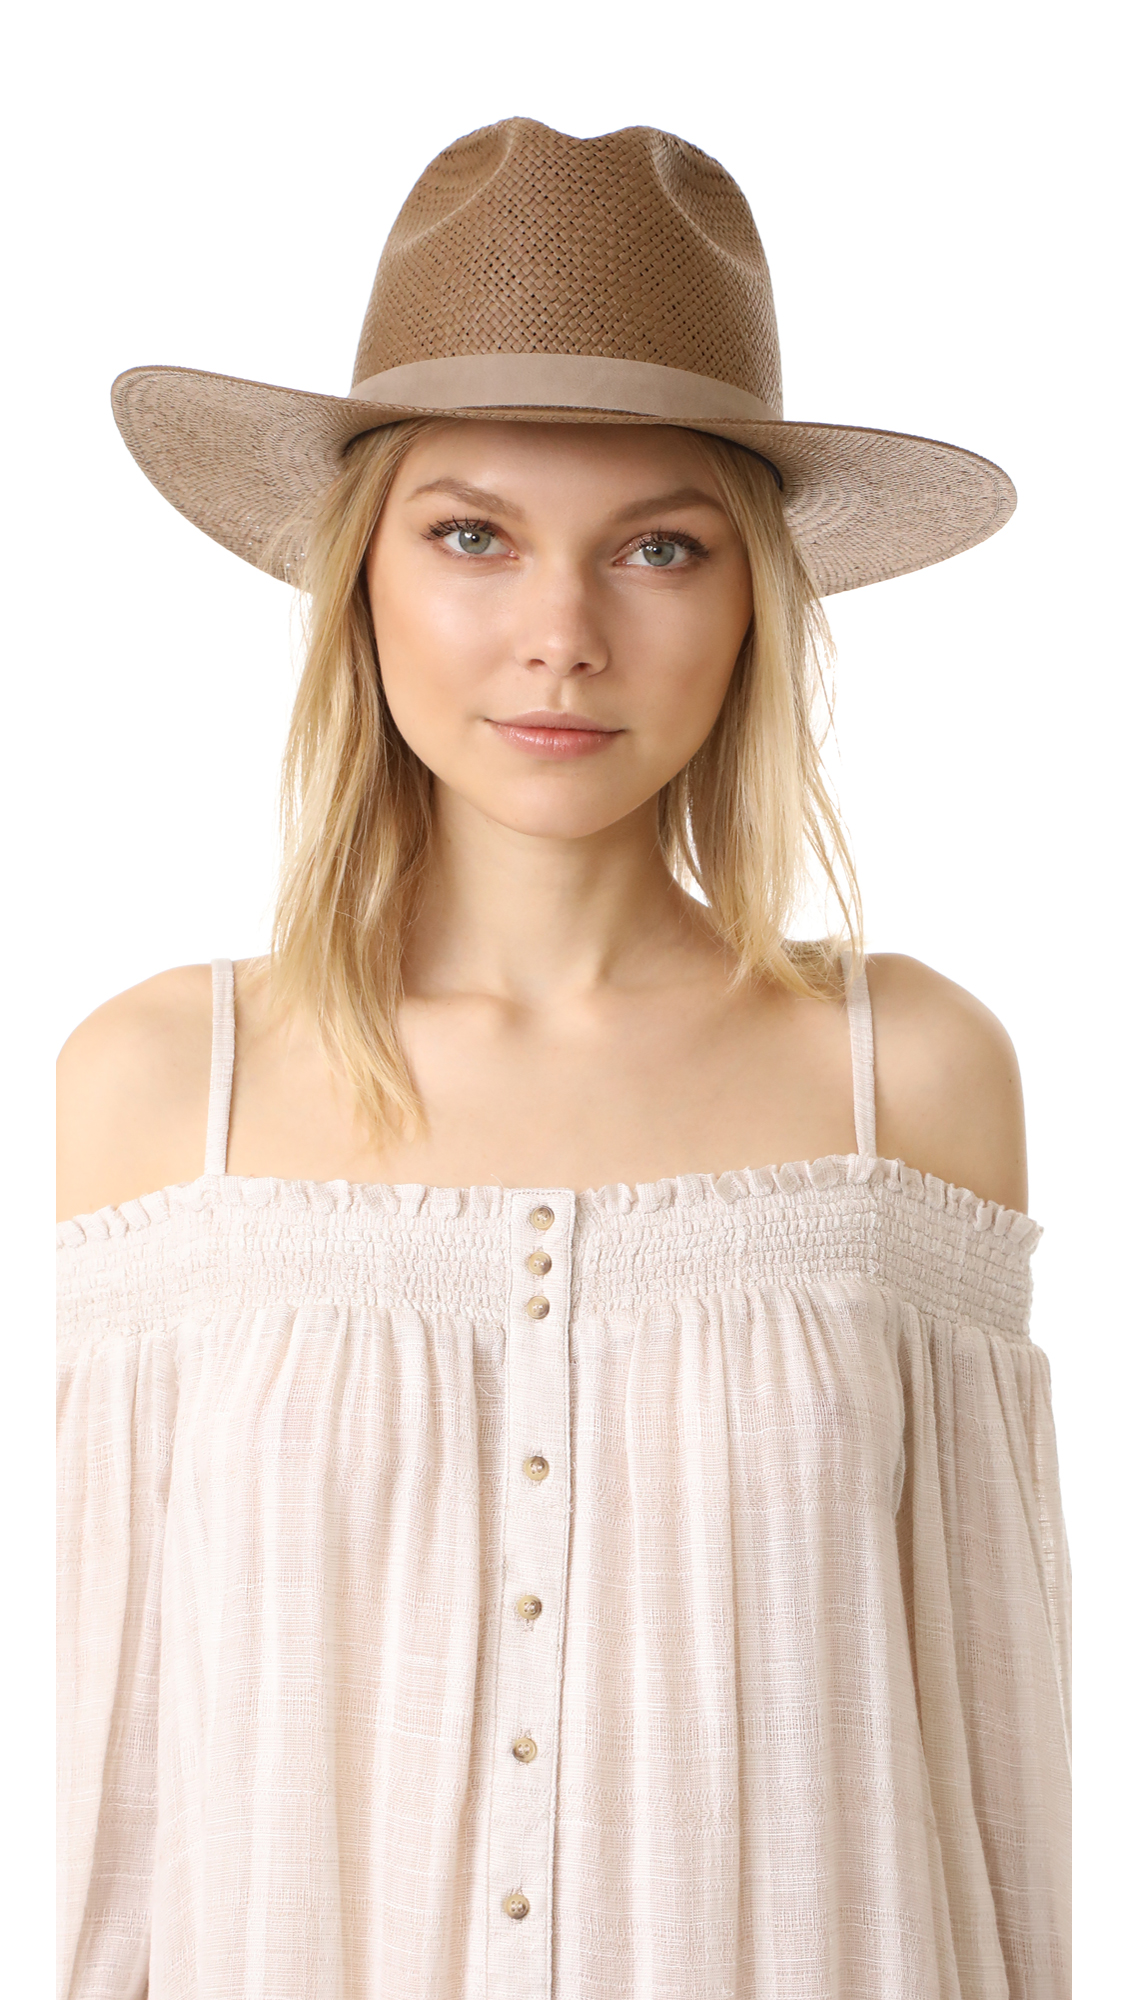 Janessa Leone Packable Adriana Short Brimmed Fedora In Brown